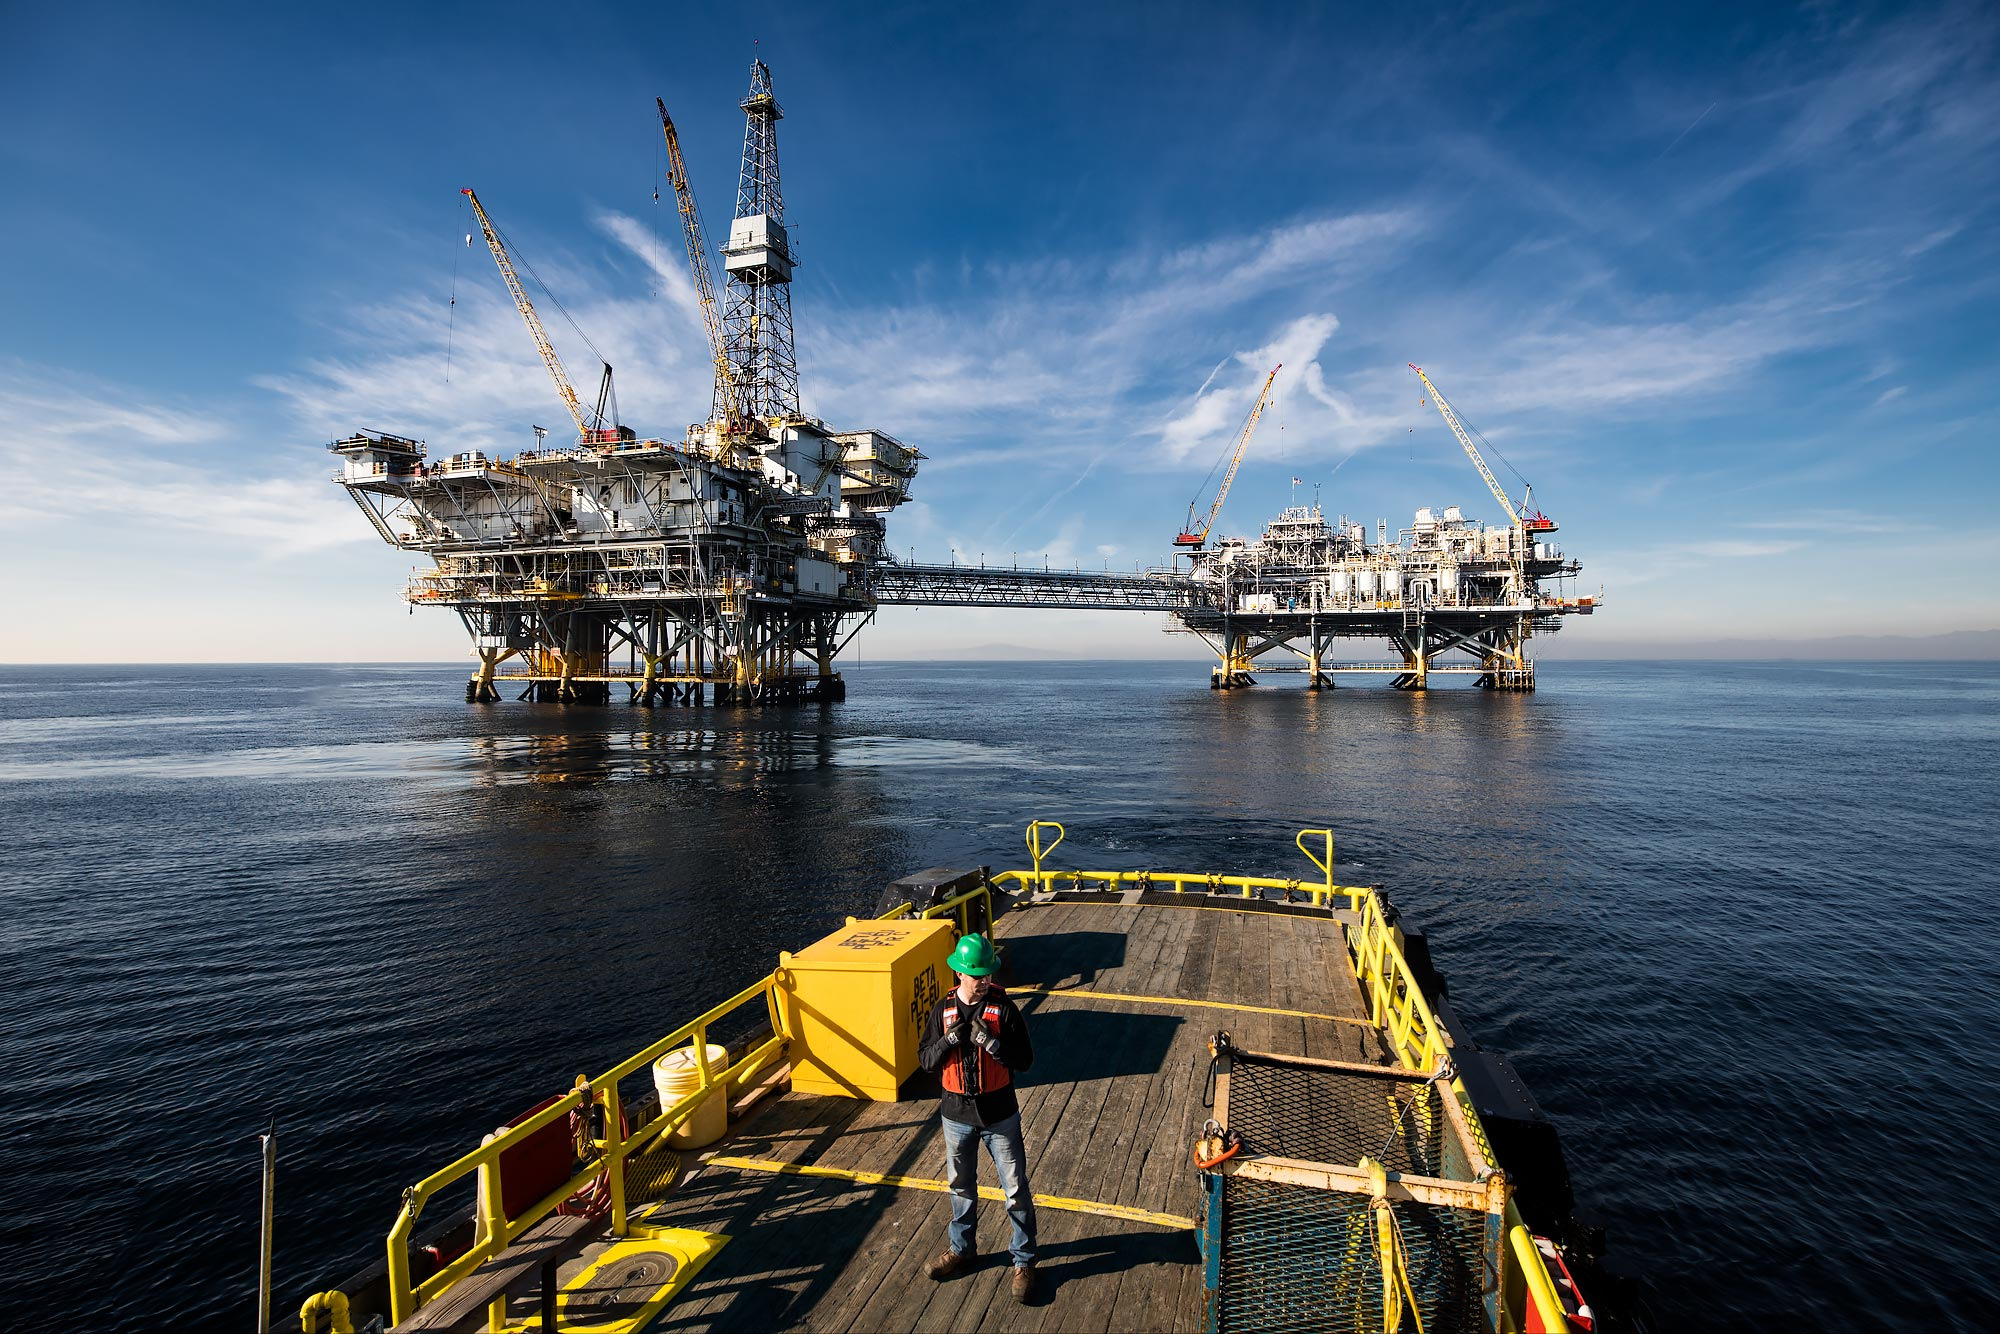 A technician stands on deck with off-shore oil platforms in the background |  Scott Gable industrial photographer